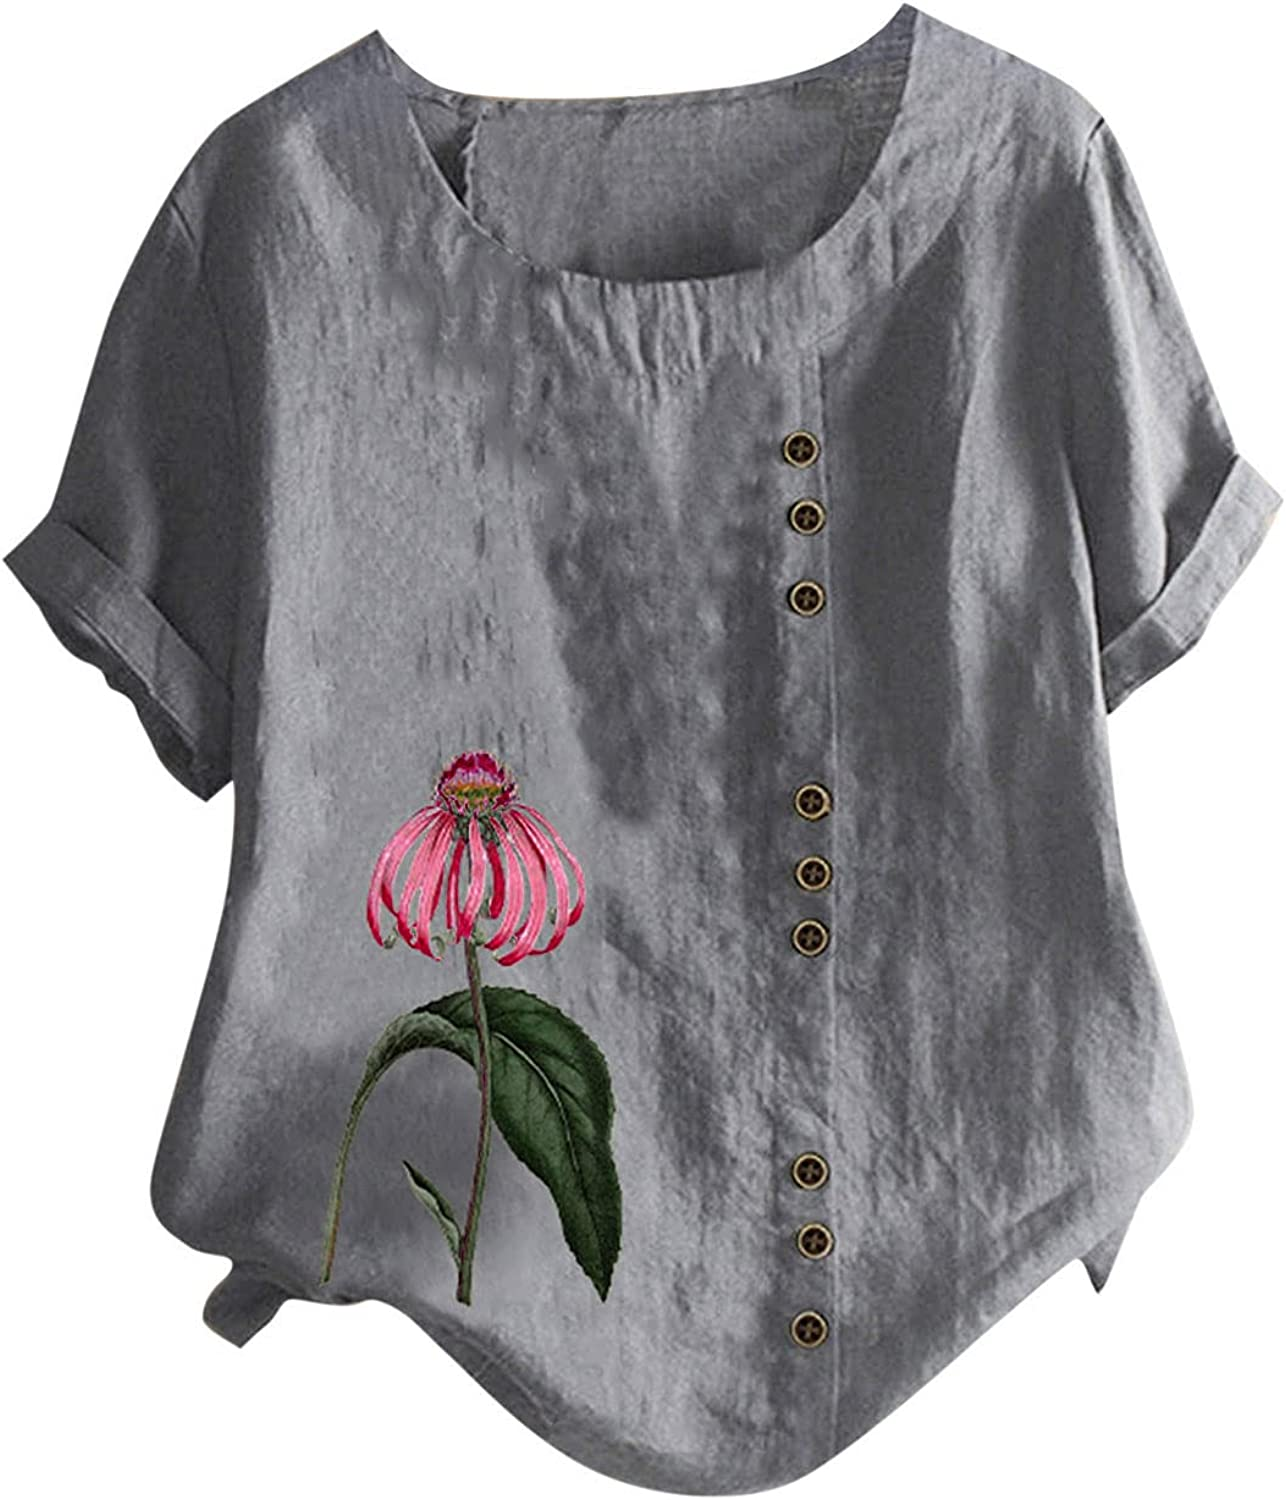 Plus Size Tops for Womens Cotton Linen Shirts Button Tunic Short Sleeve Blouse Summer Casual Tshirts